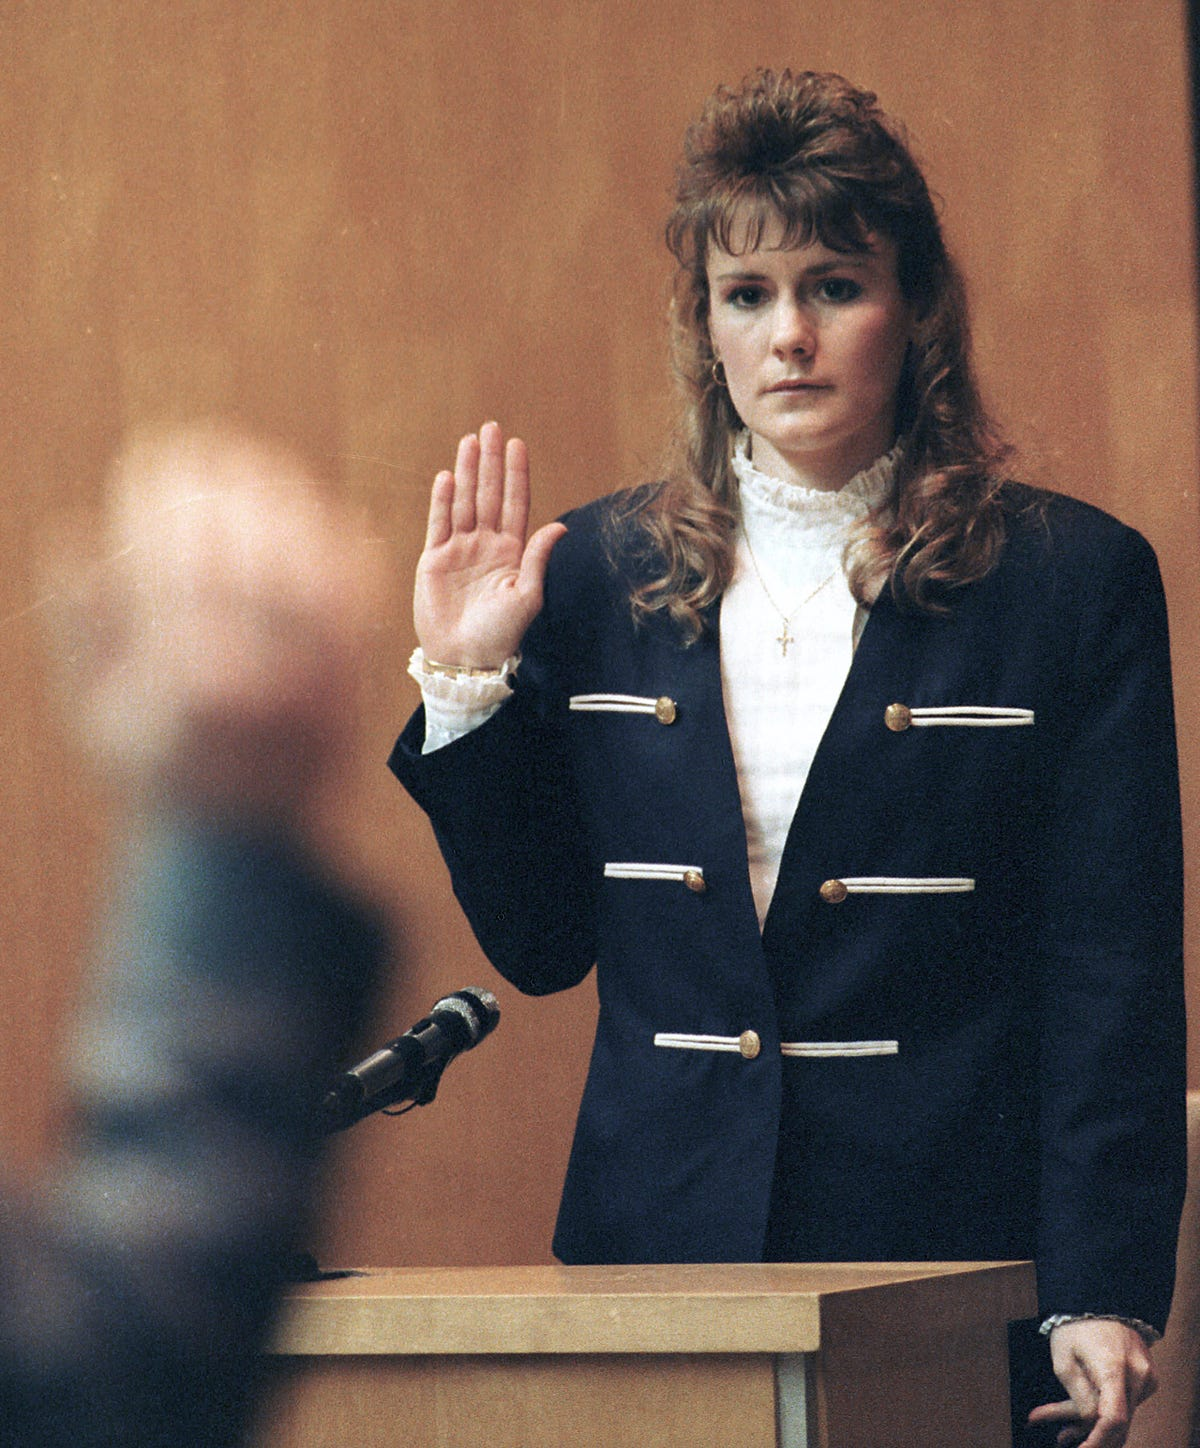 Lacey Spears joins list of notorious killers at prison